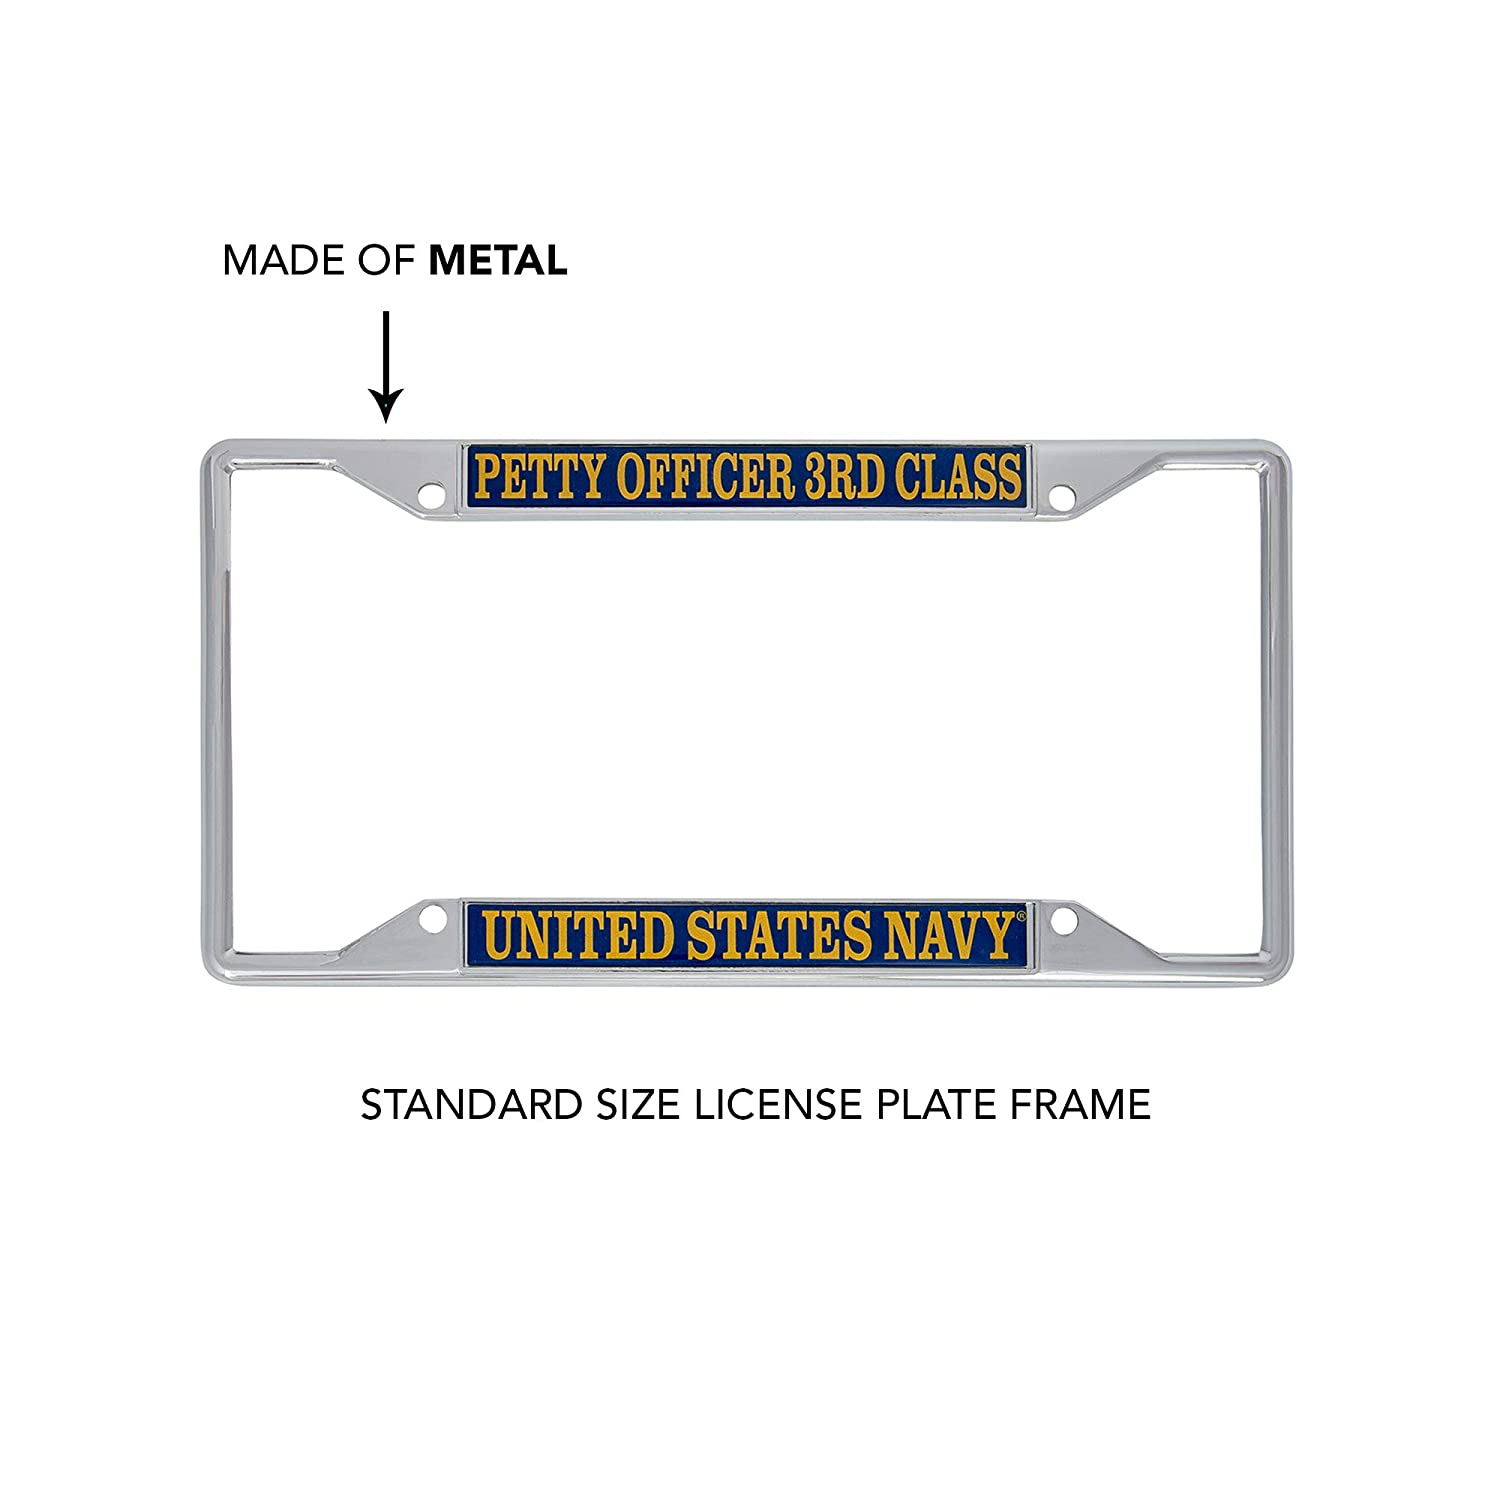 Desert Cactus US Navy Petty Officer 3rd Class Enlisted Grades License Plate Frame for Front Back of Car Officially Licensed United States